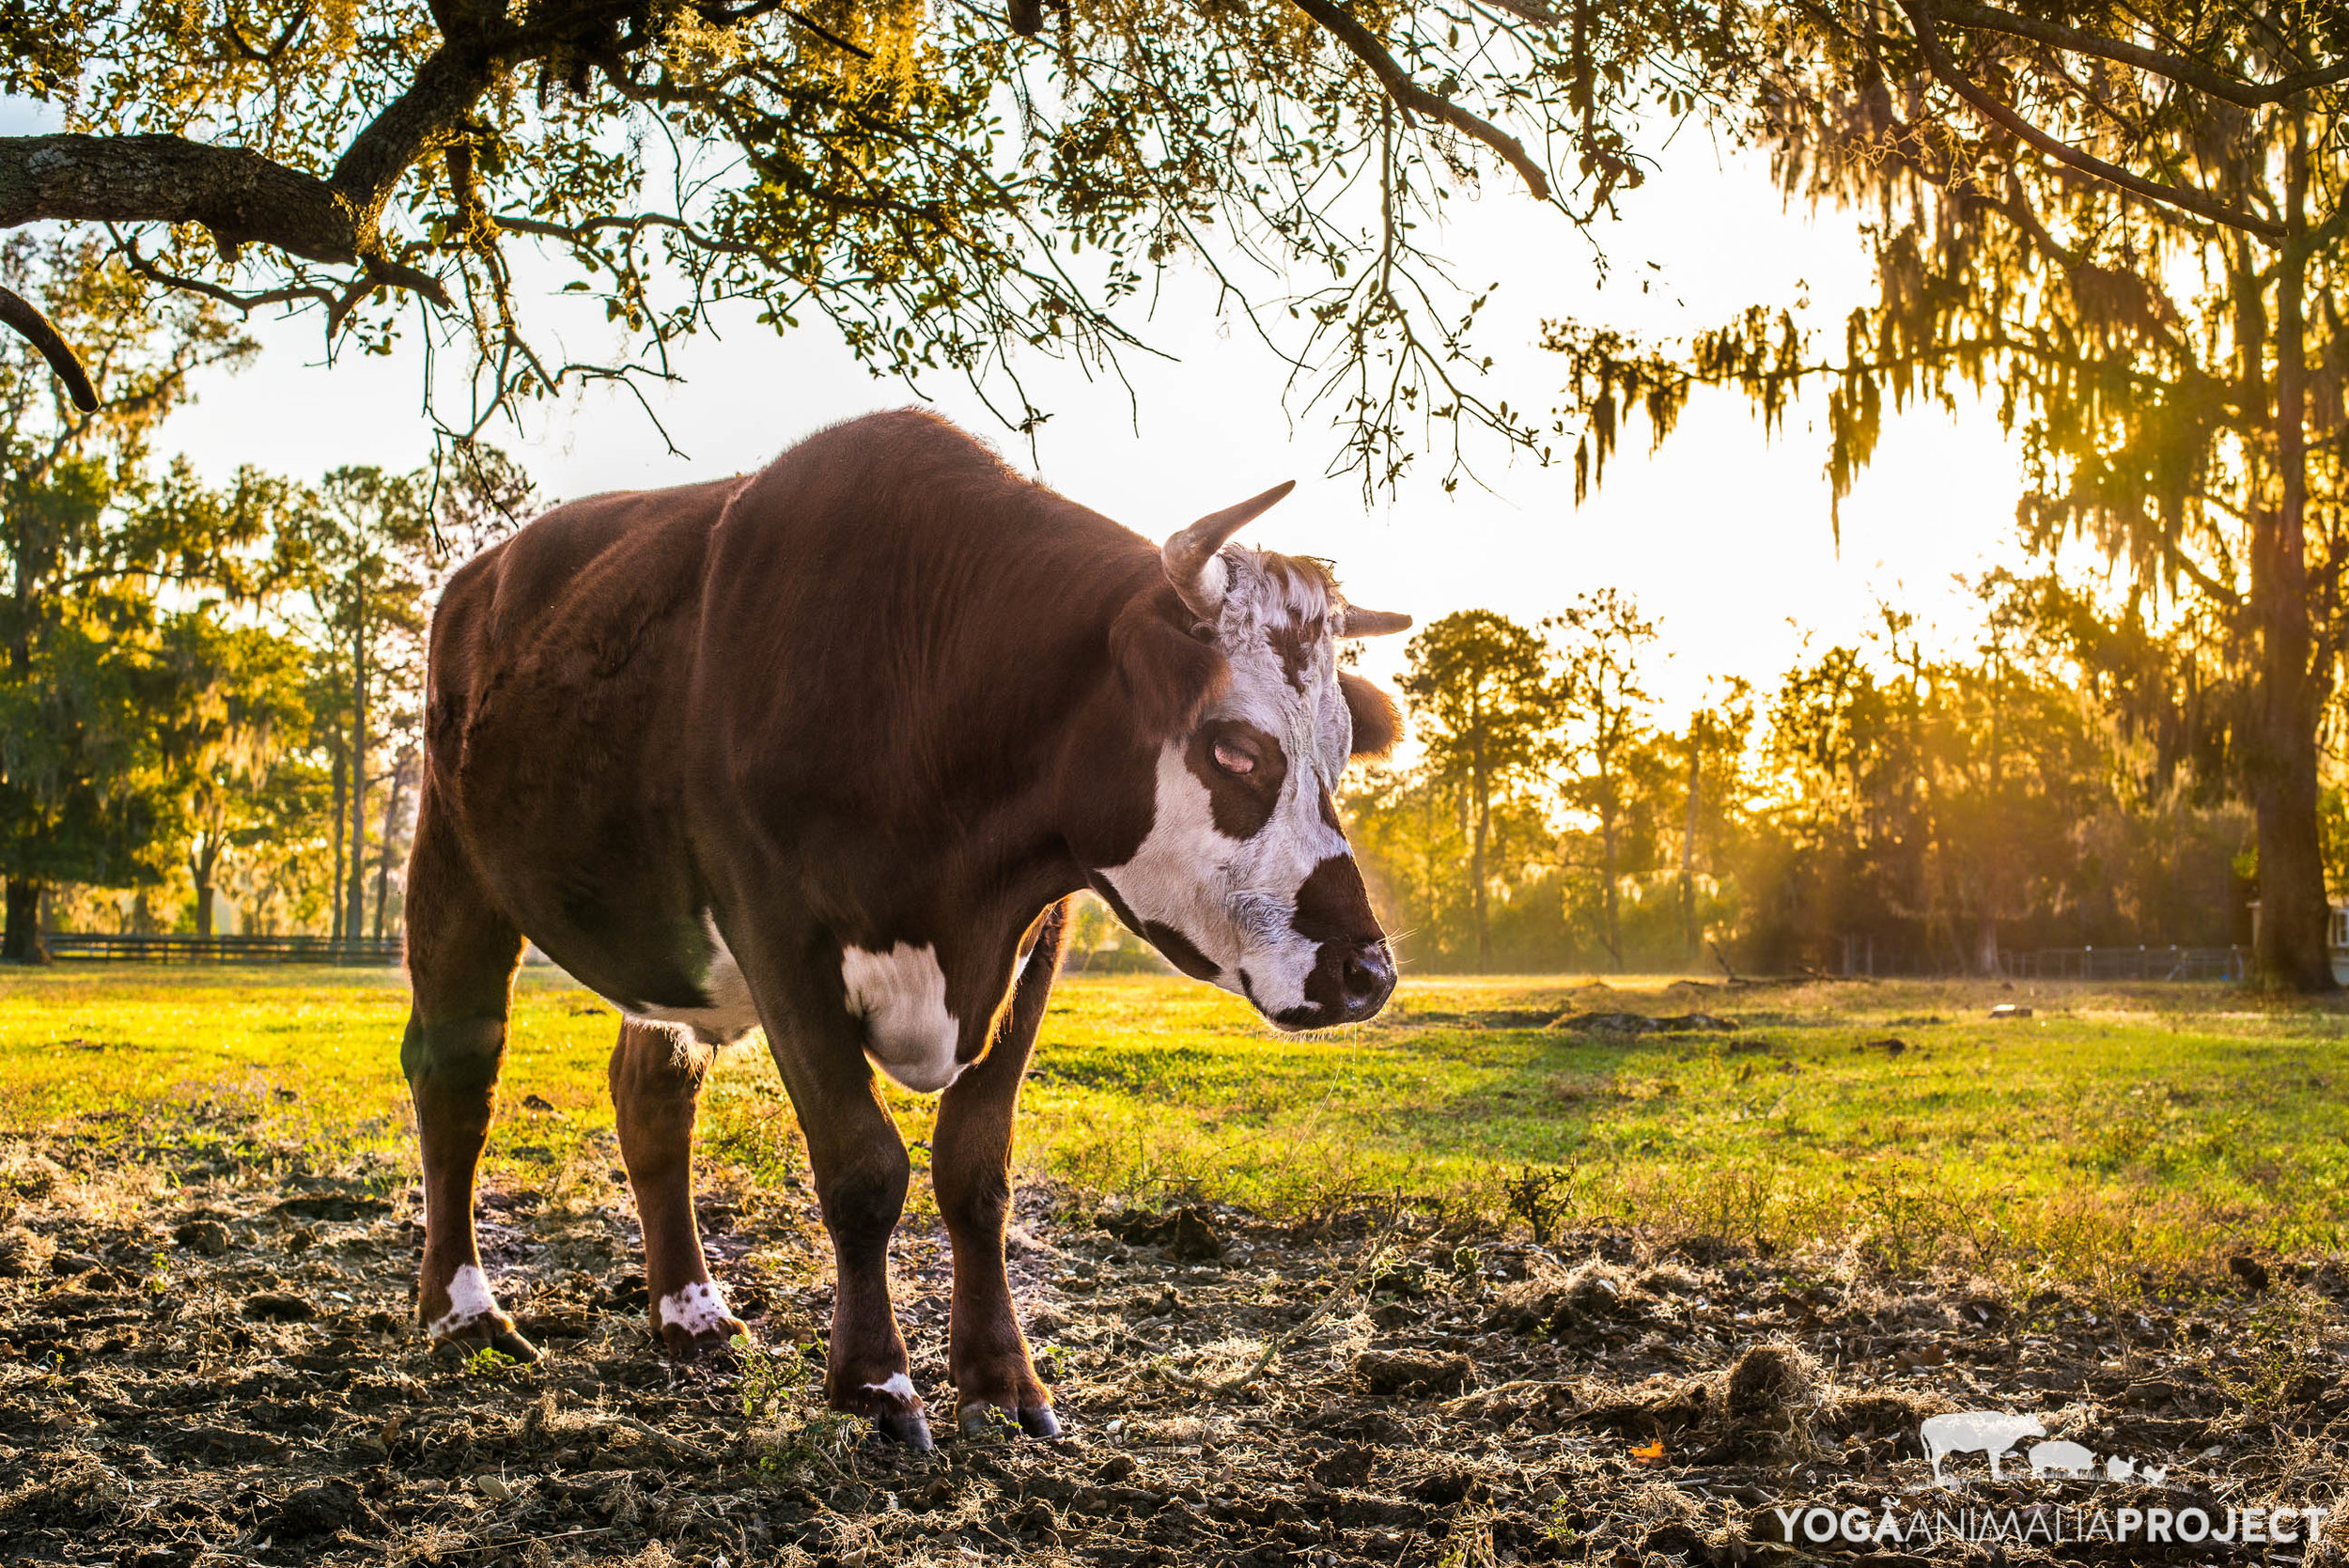 Yoga Animalia: Bovine - Owen, Kindred Spirits Sanctuary, Ocala, Florida